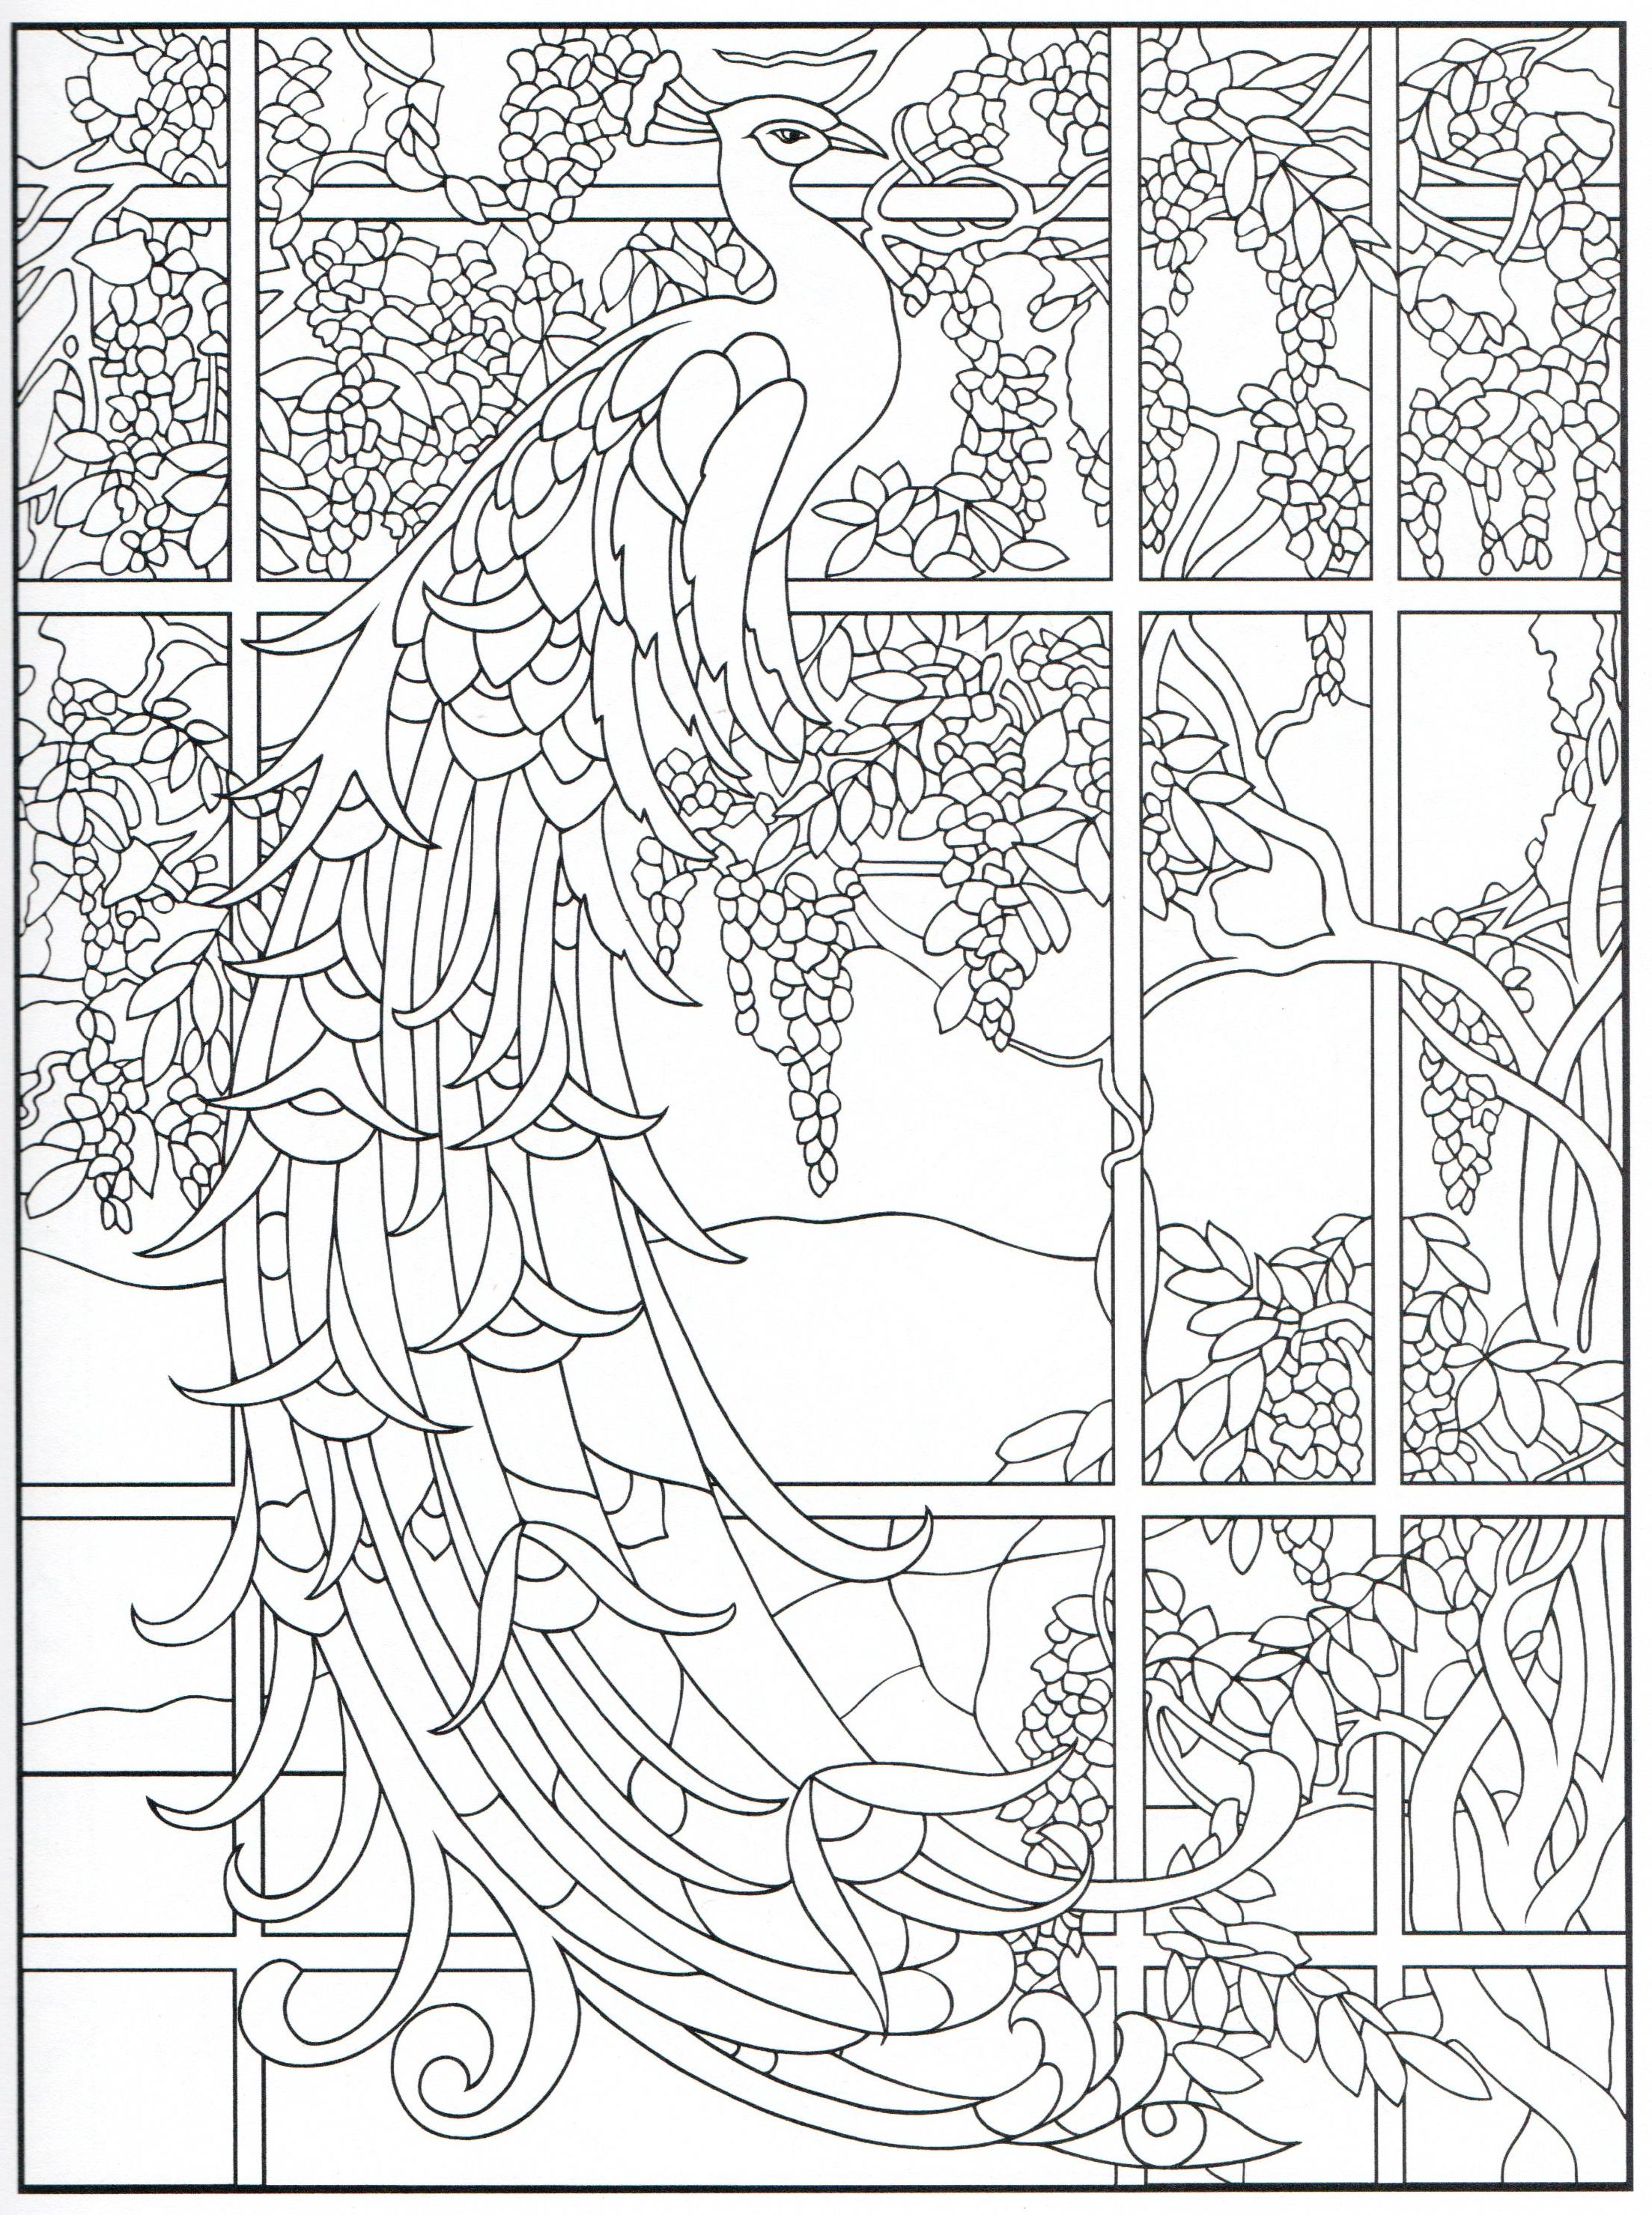 Peacock Coloring Page 23 31 Peacock Coloring Pages Coloring Pages Designs Coloring Books